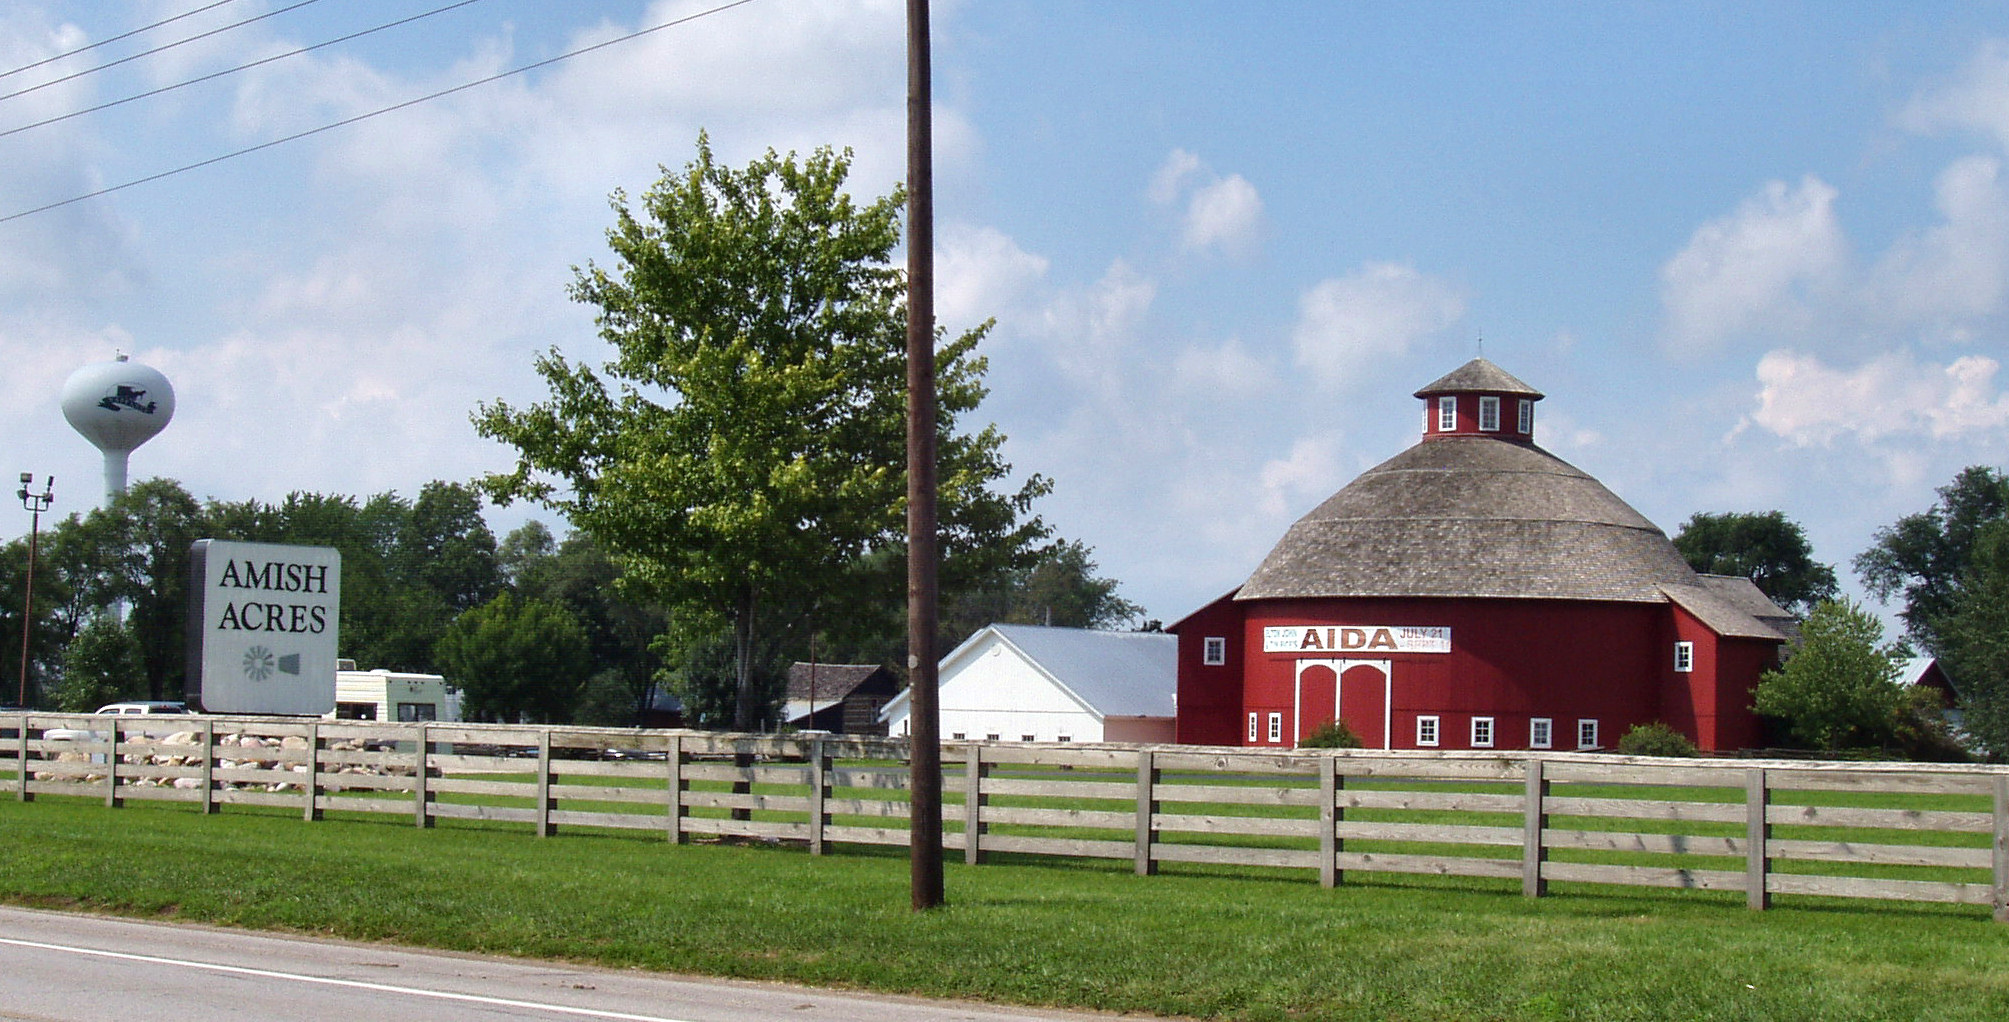 Image result for amish acres indiana